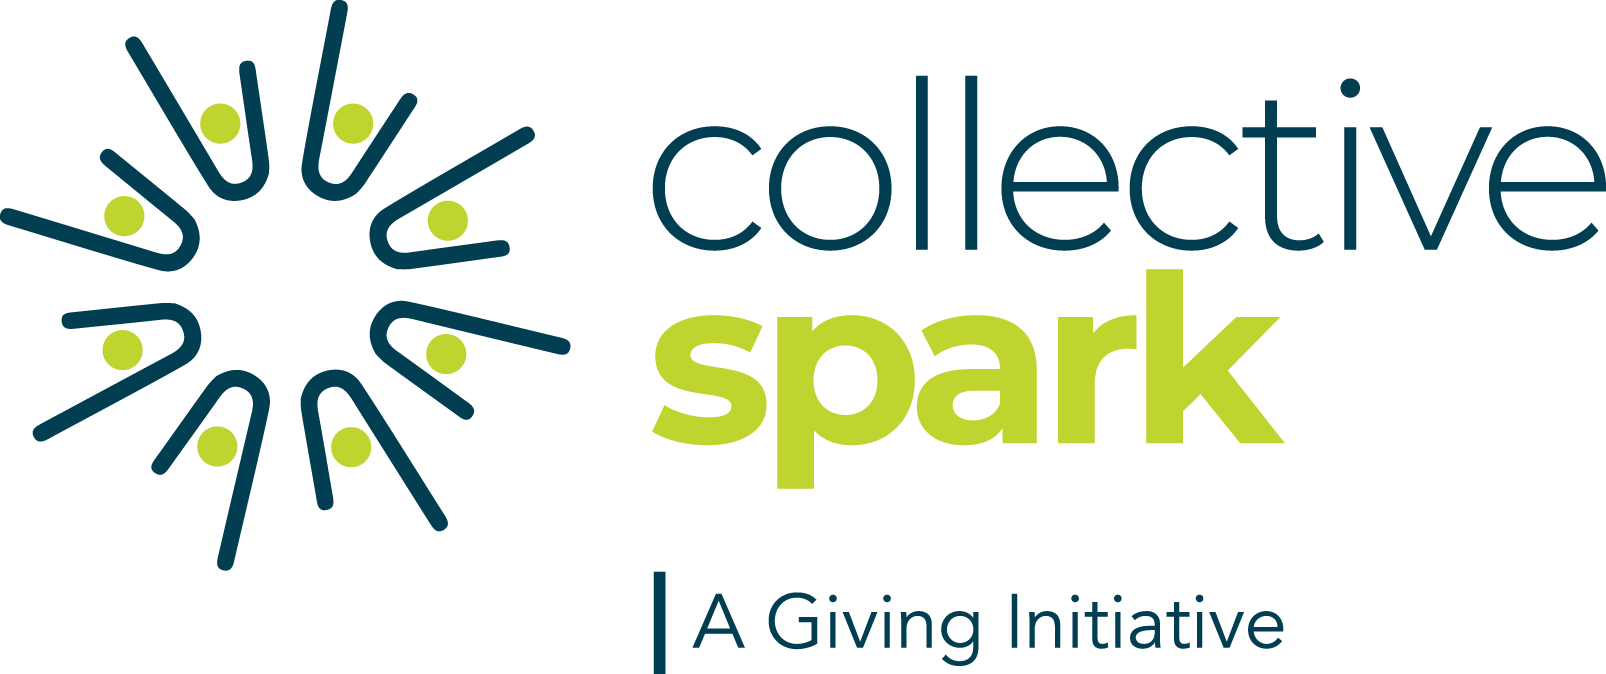 Collective Spark: A Giving Initiative